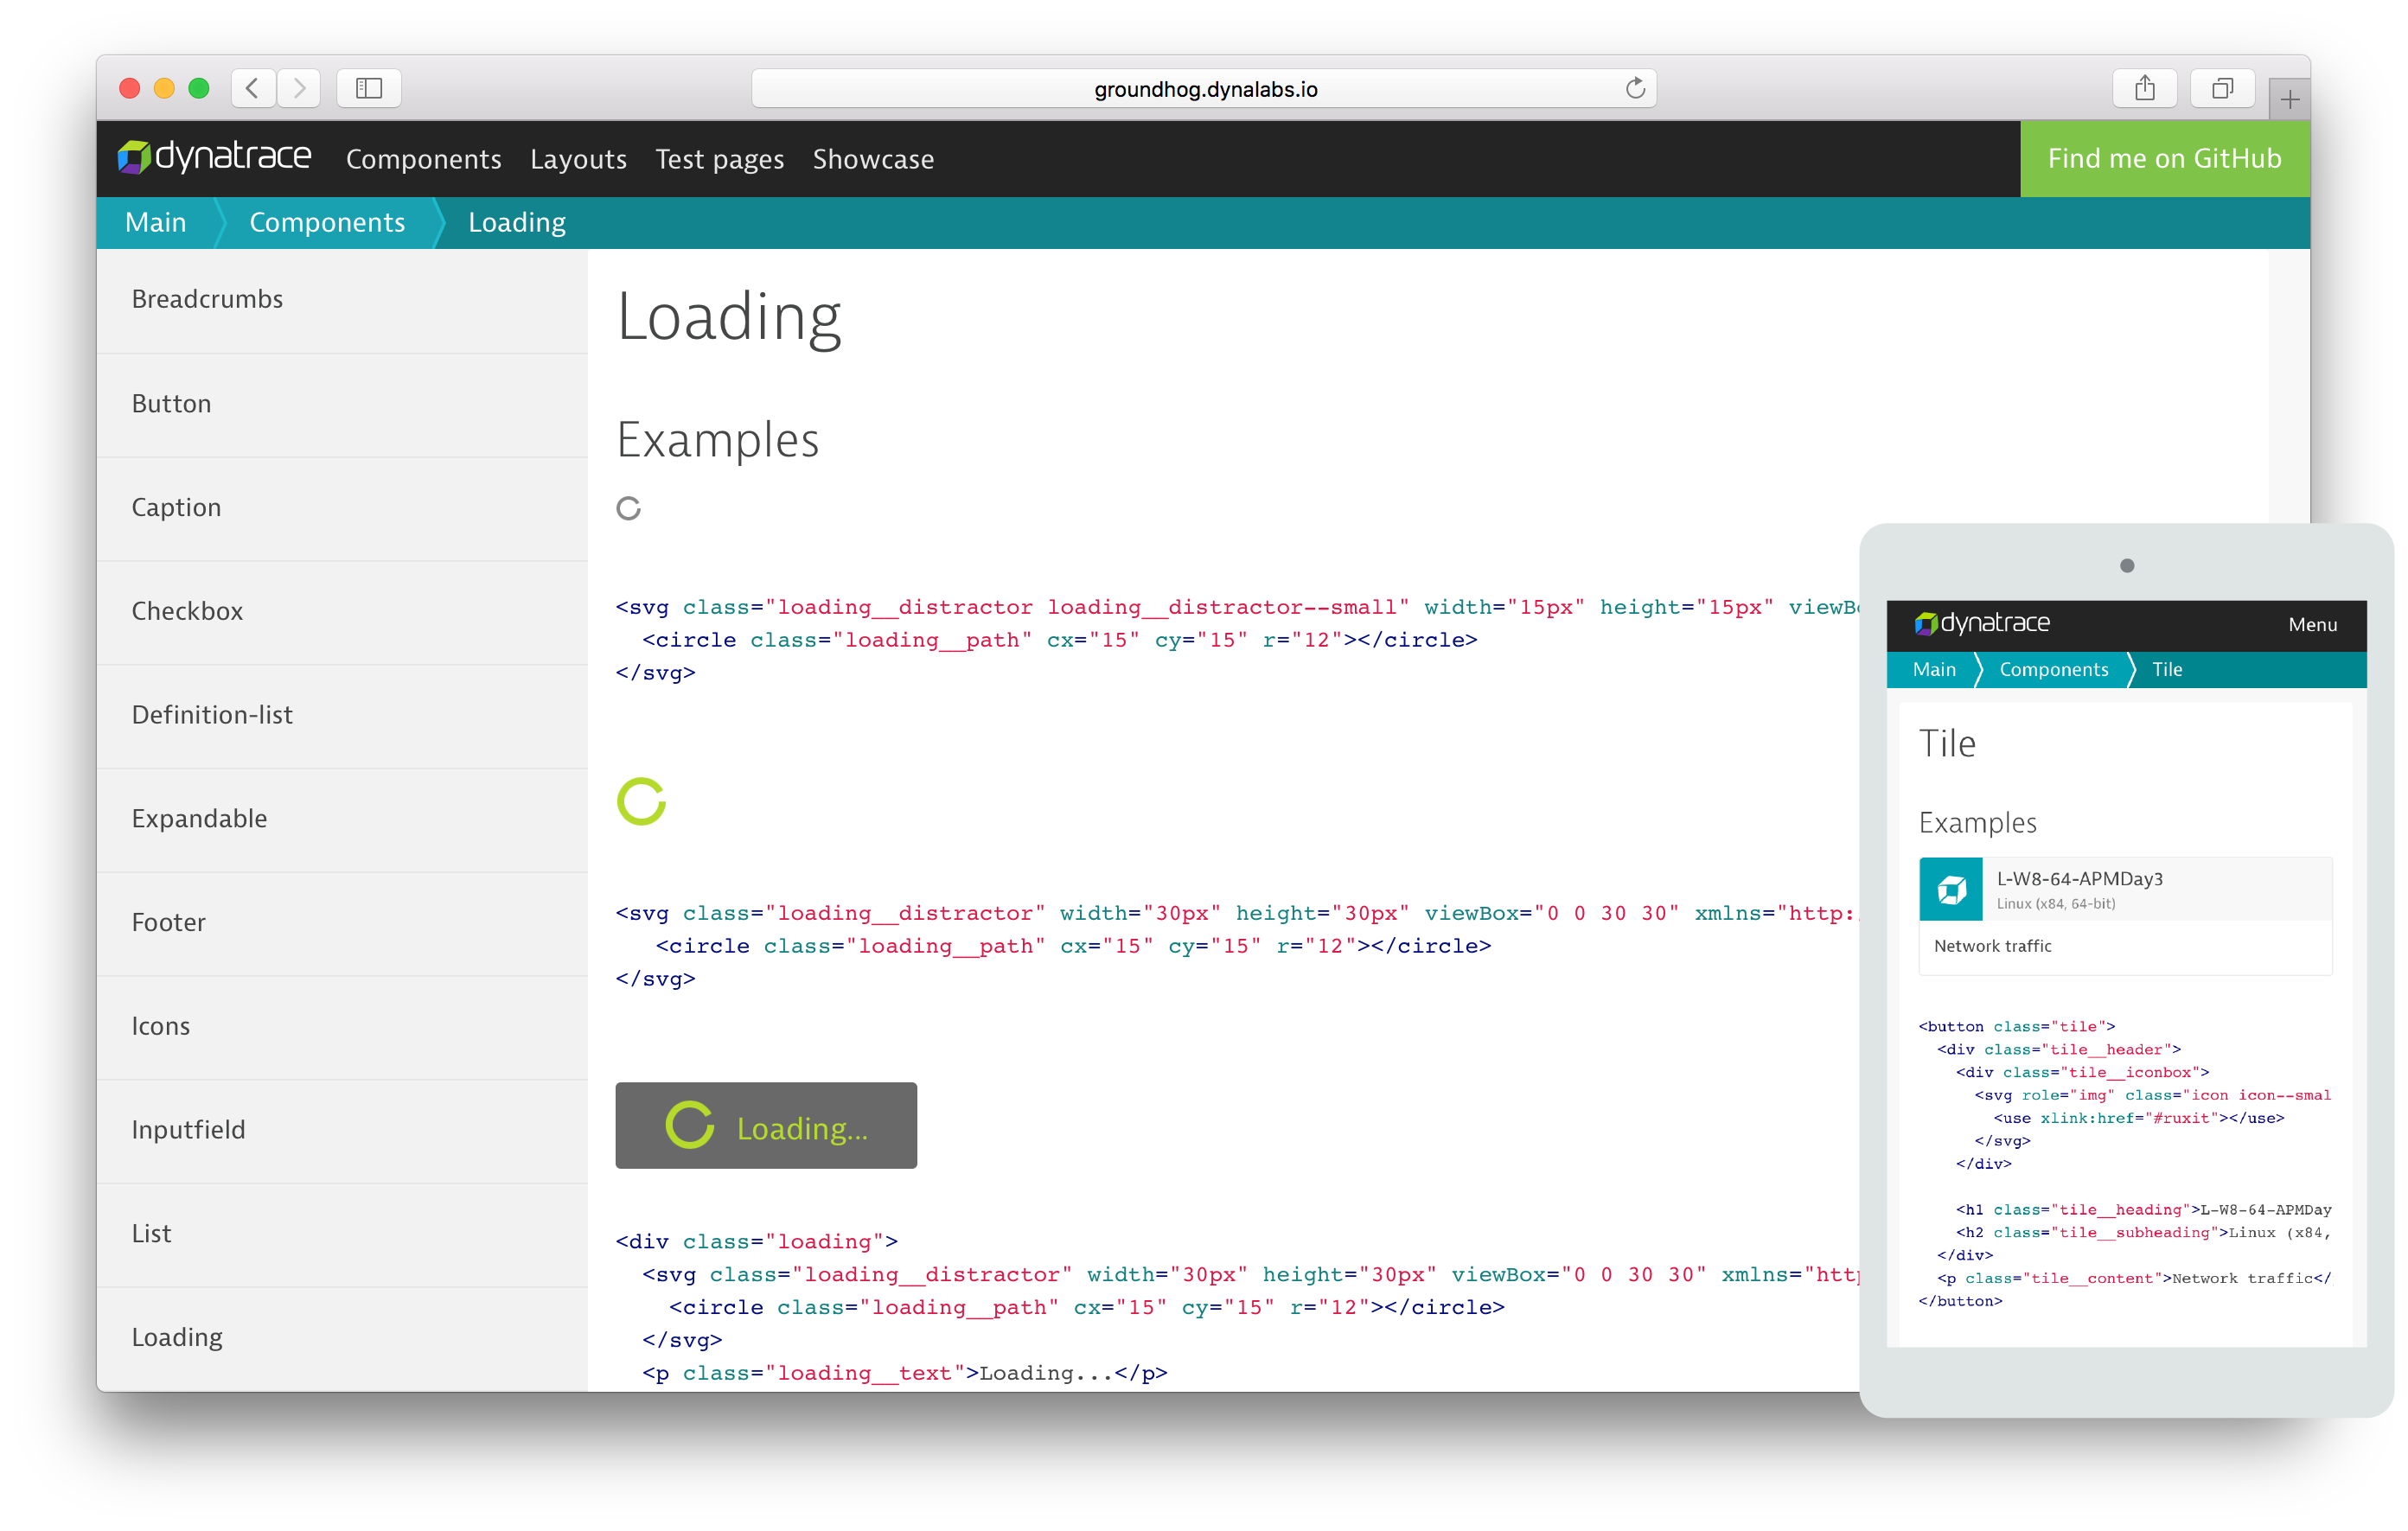 Groundhog.dynalabs.io a CSS component library for all Dynatrace web entities.